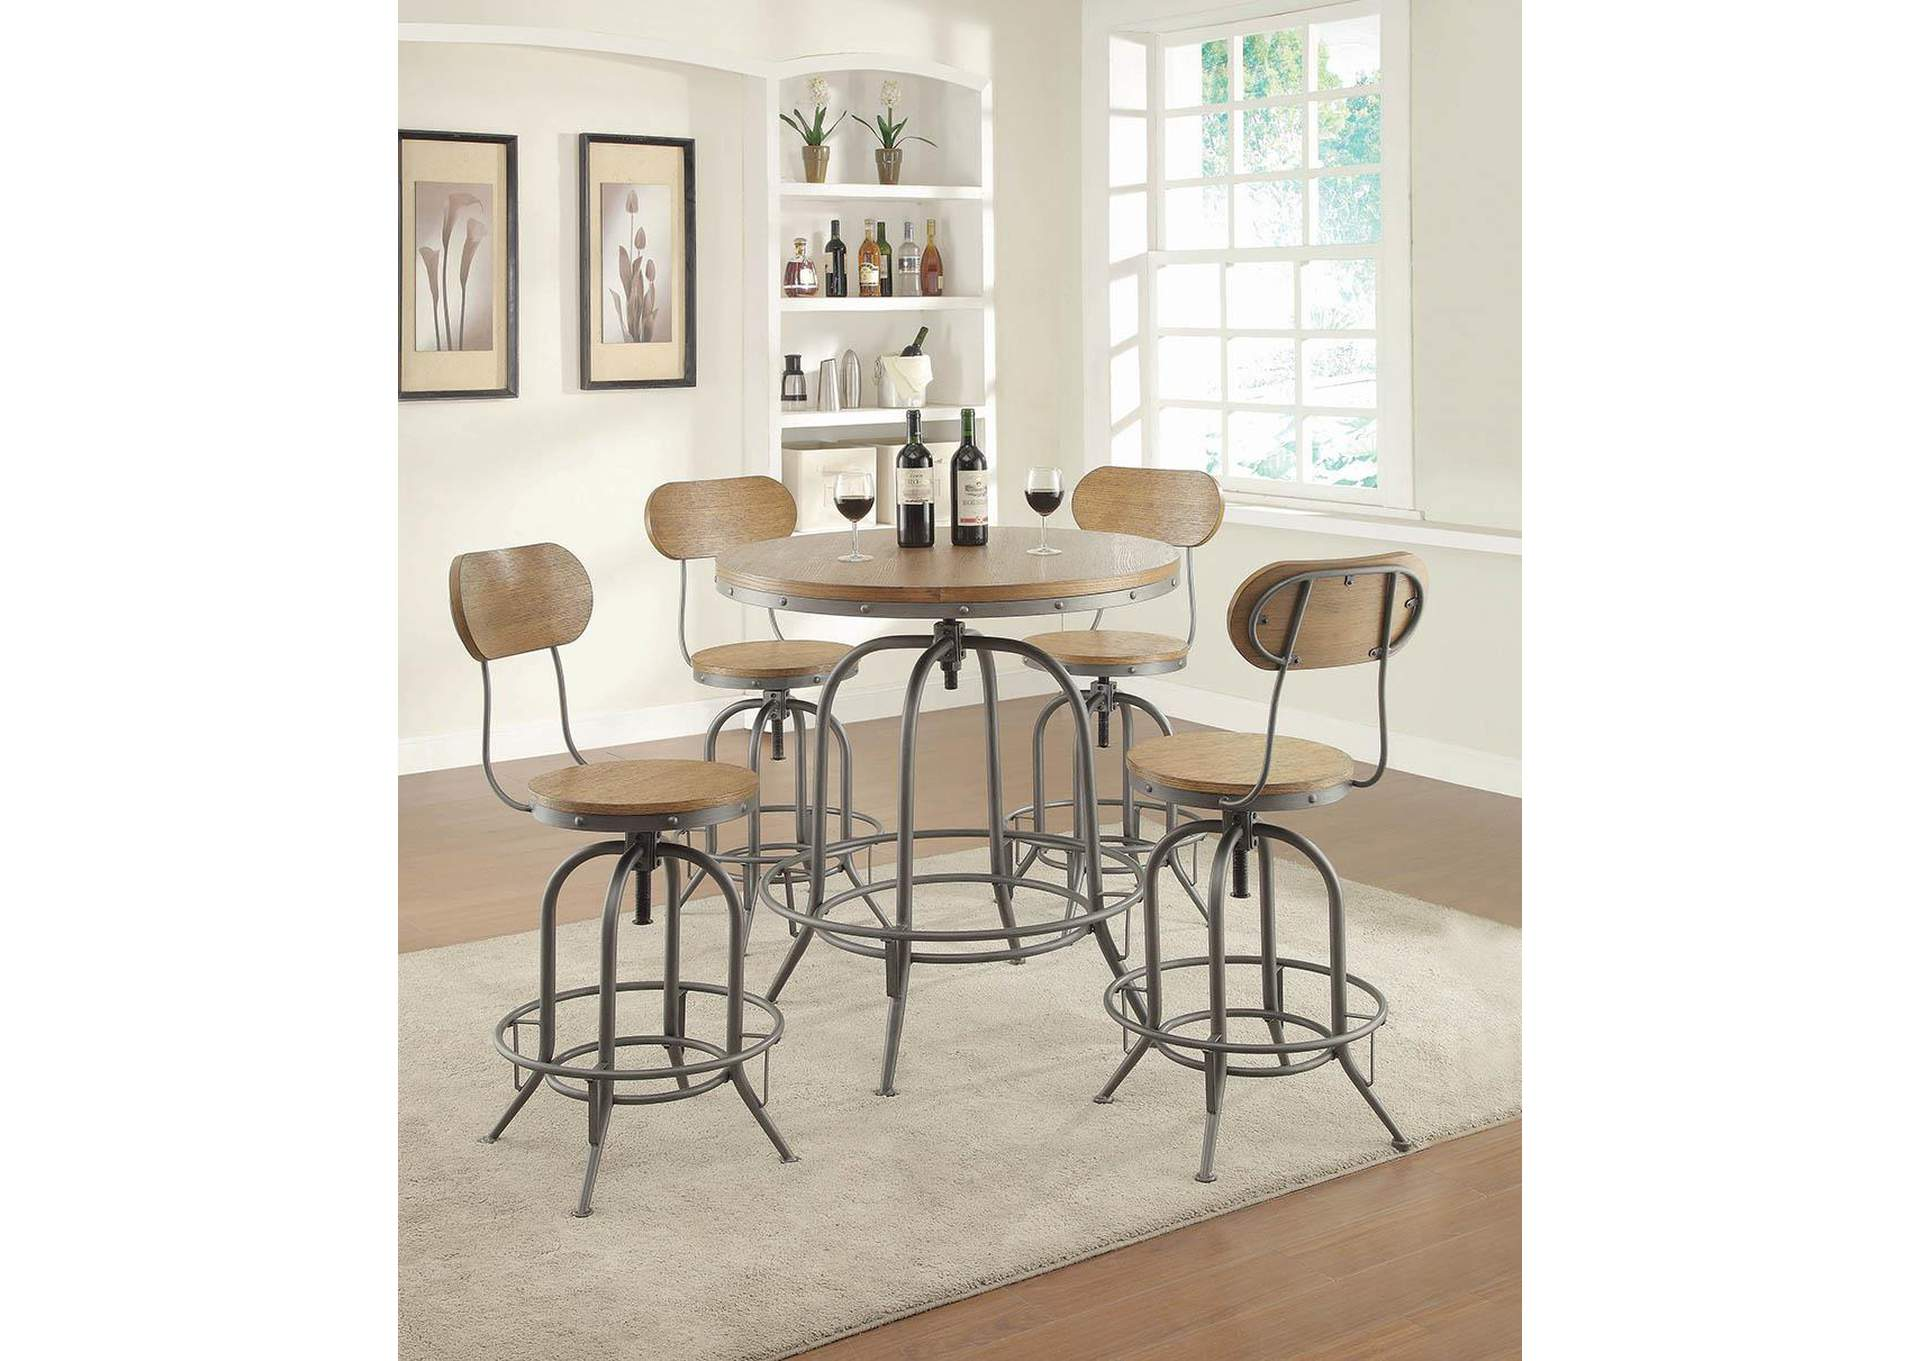 Brown Bar Stool (Set of 2),ABF Coaster Furniture